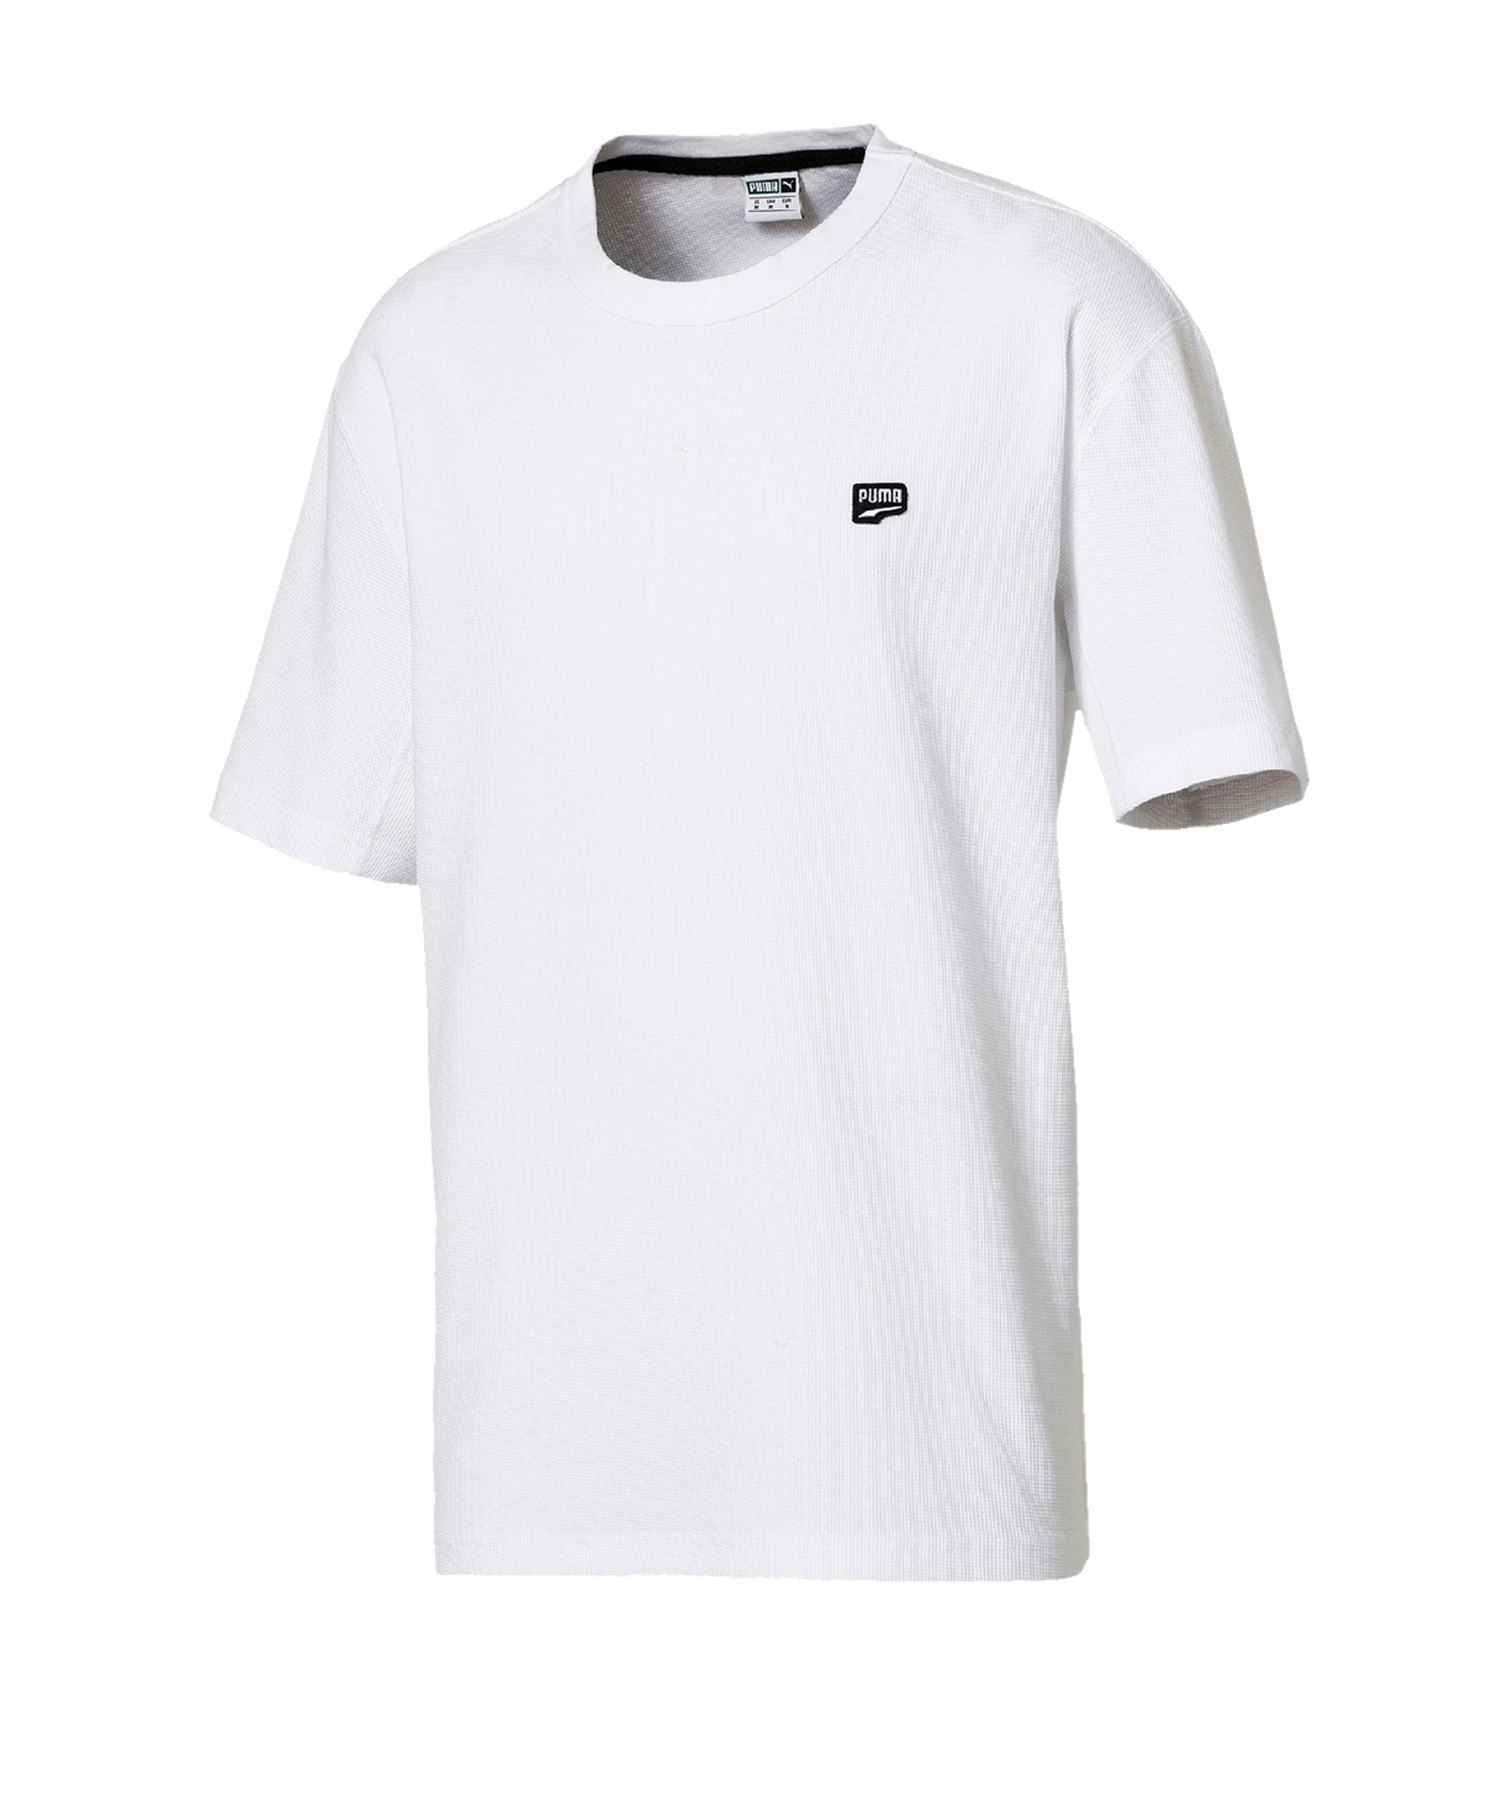 PUMA Downtown Tee T-Shirt Weiss F02 - weiss